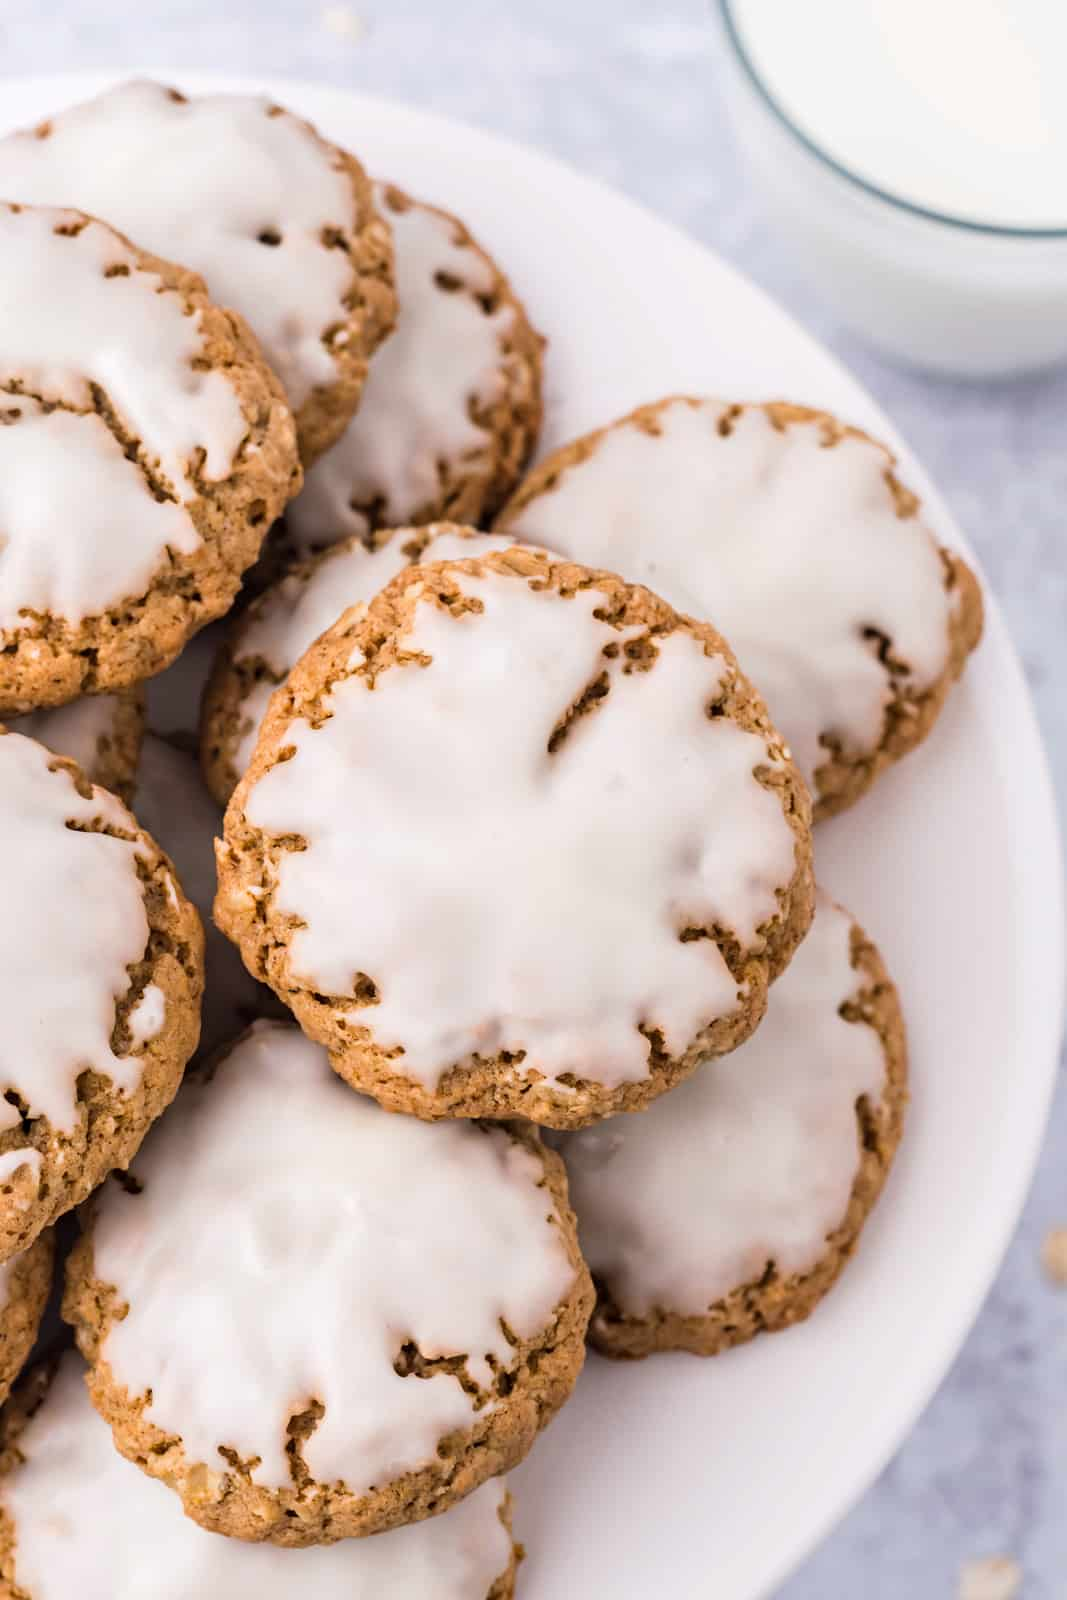 Stacked Iced Oatmeal Cookies overhead on white stand.